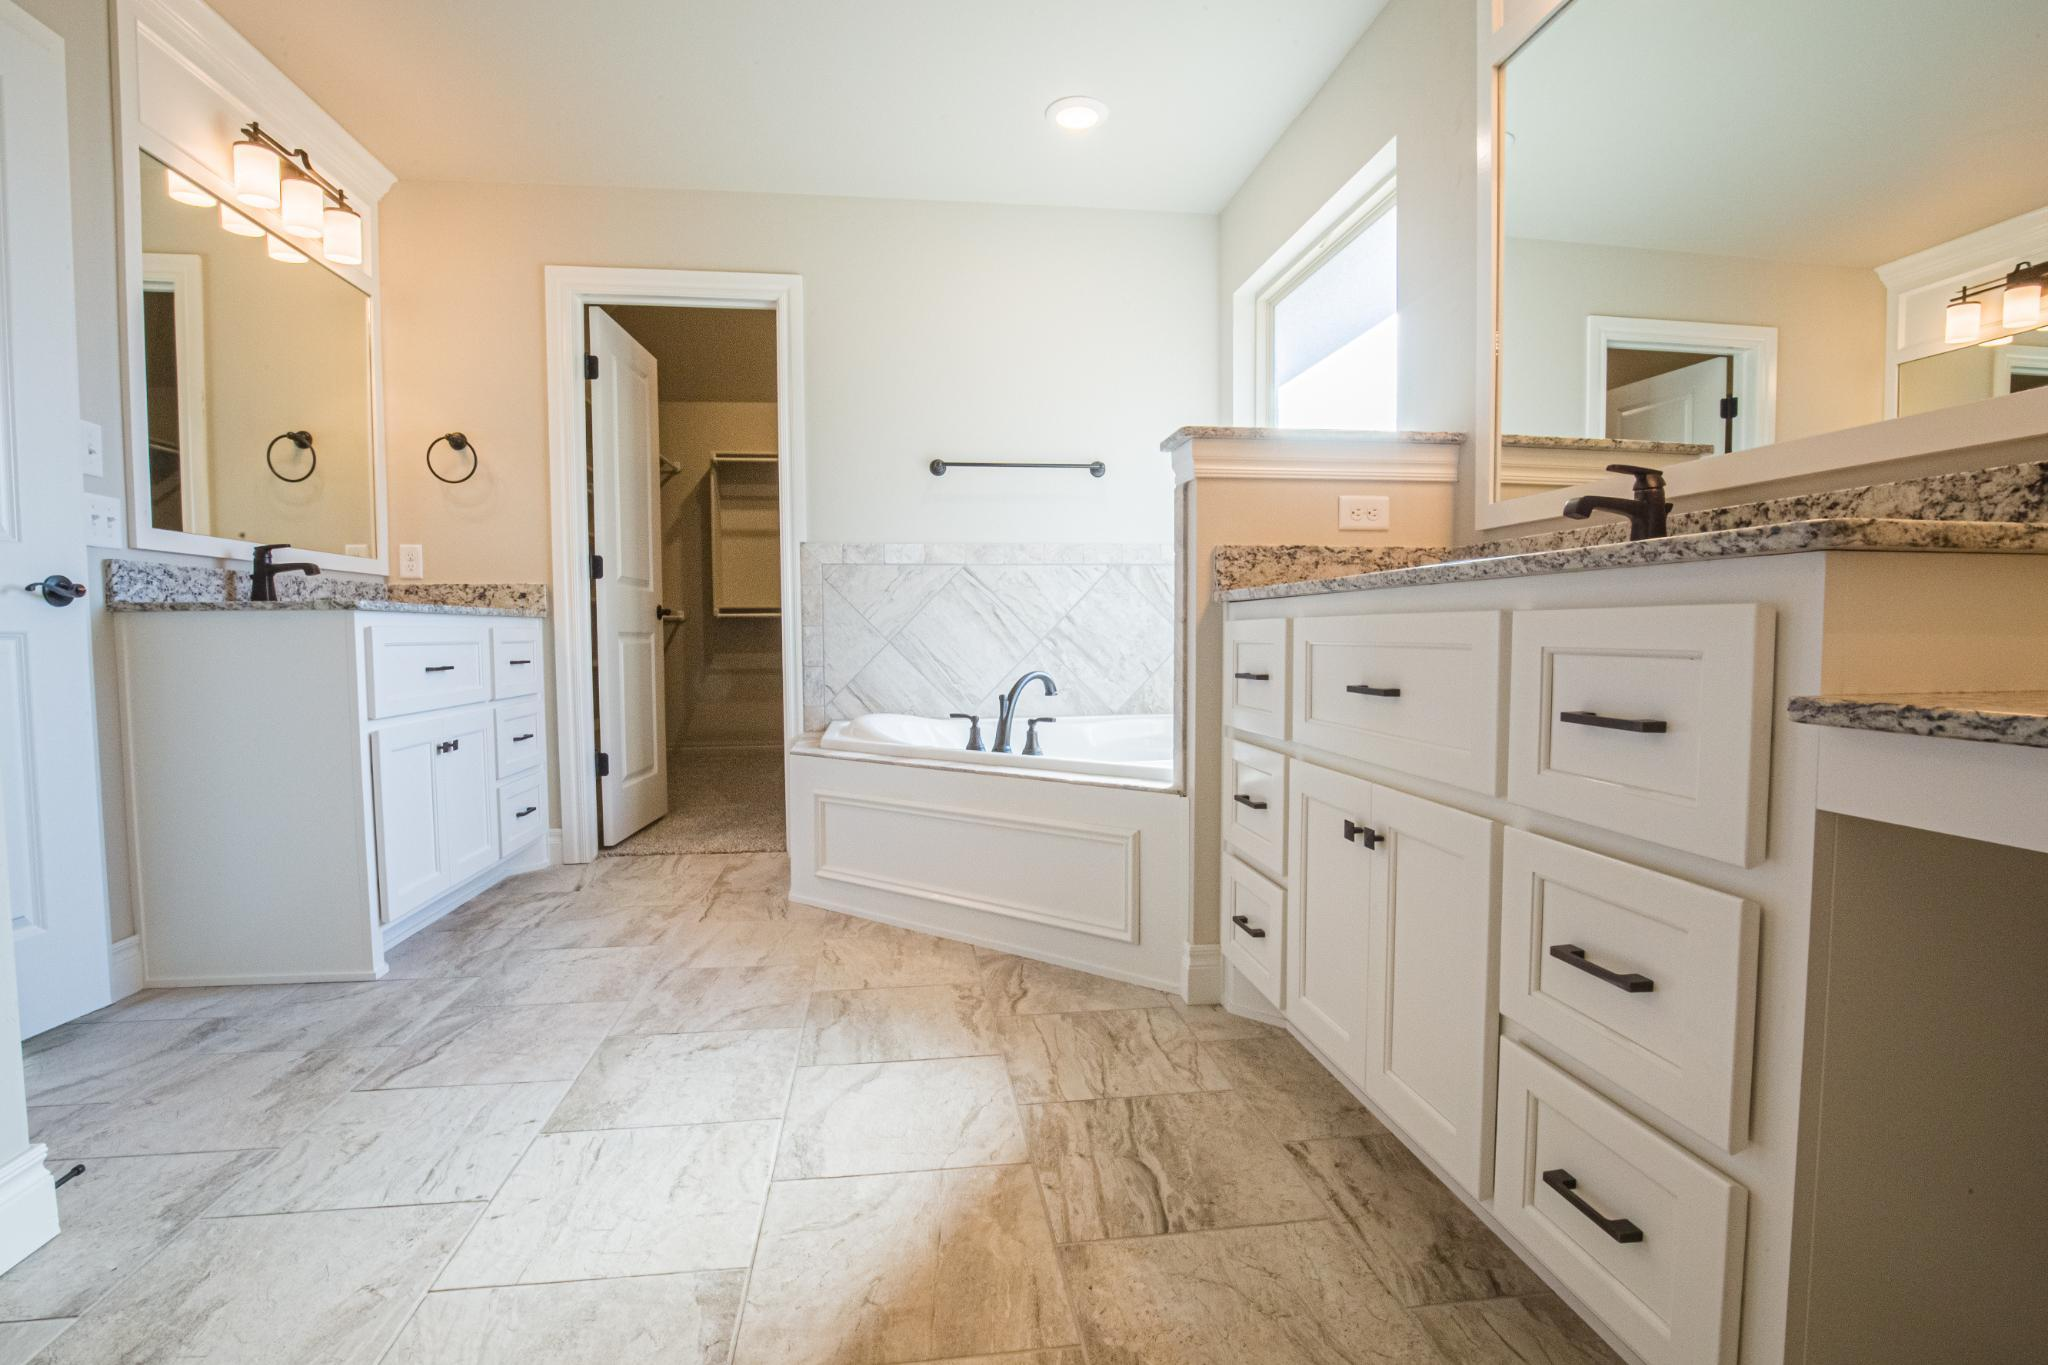 Bathroom featured in the Shiloh Plus Half Bath By Homes By Taber in Oklahoma City, OK